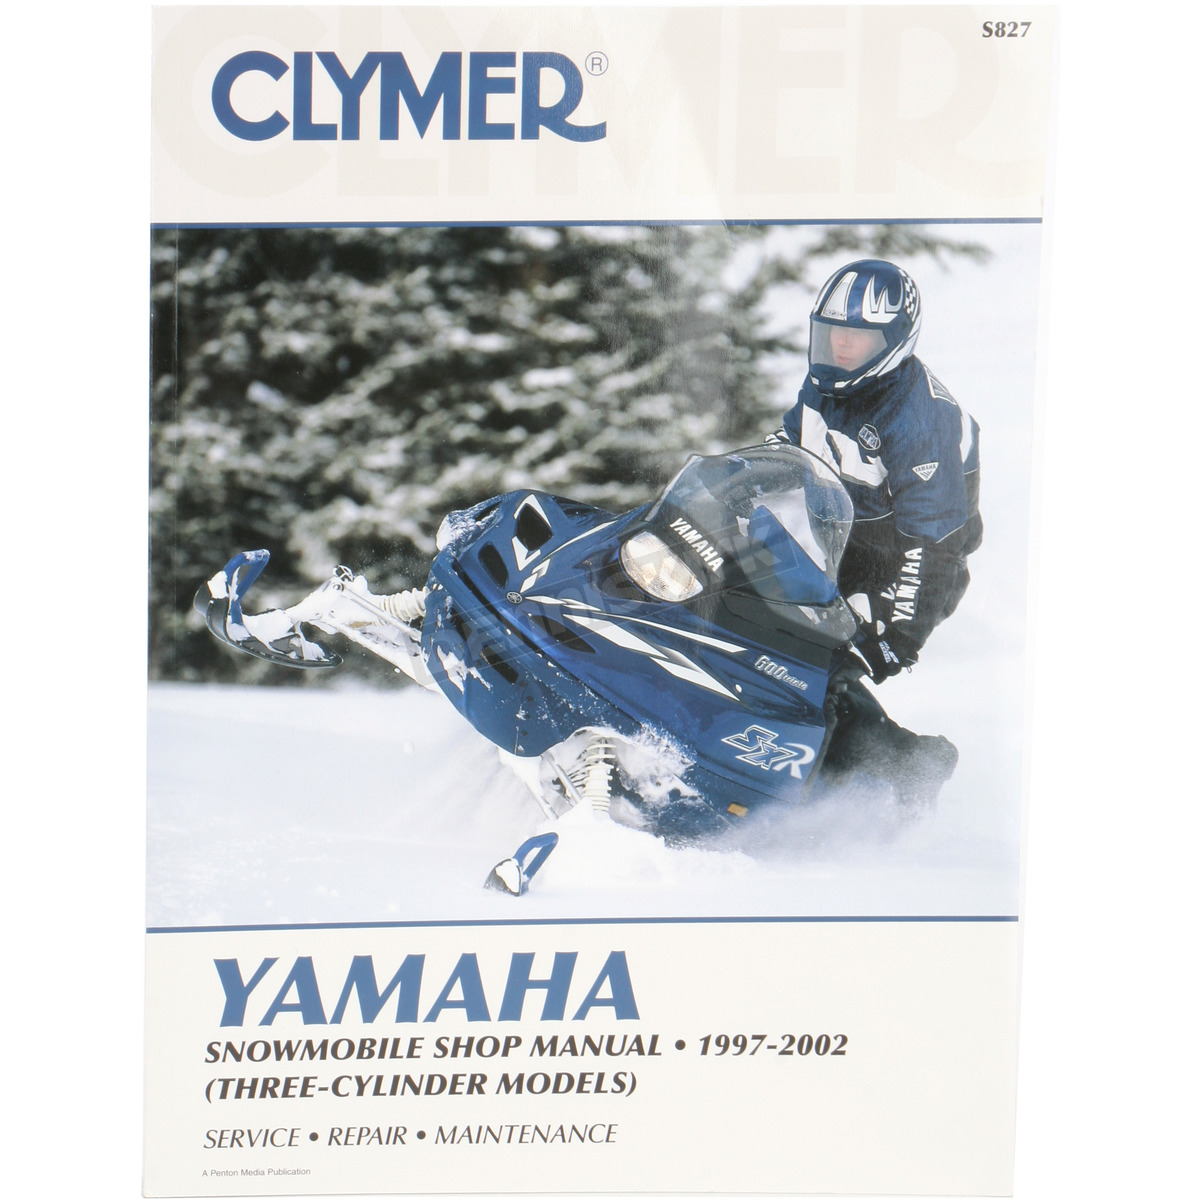 Clymer Snowmobile Service Manual - S827